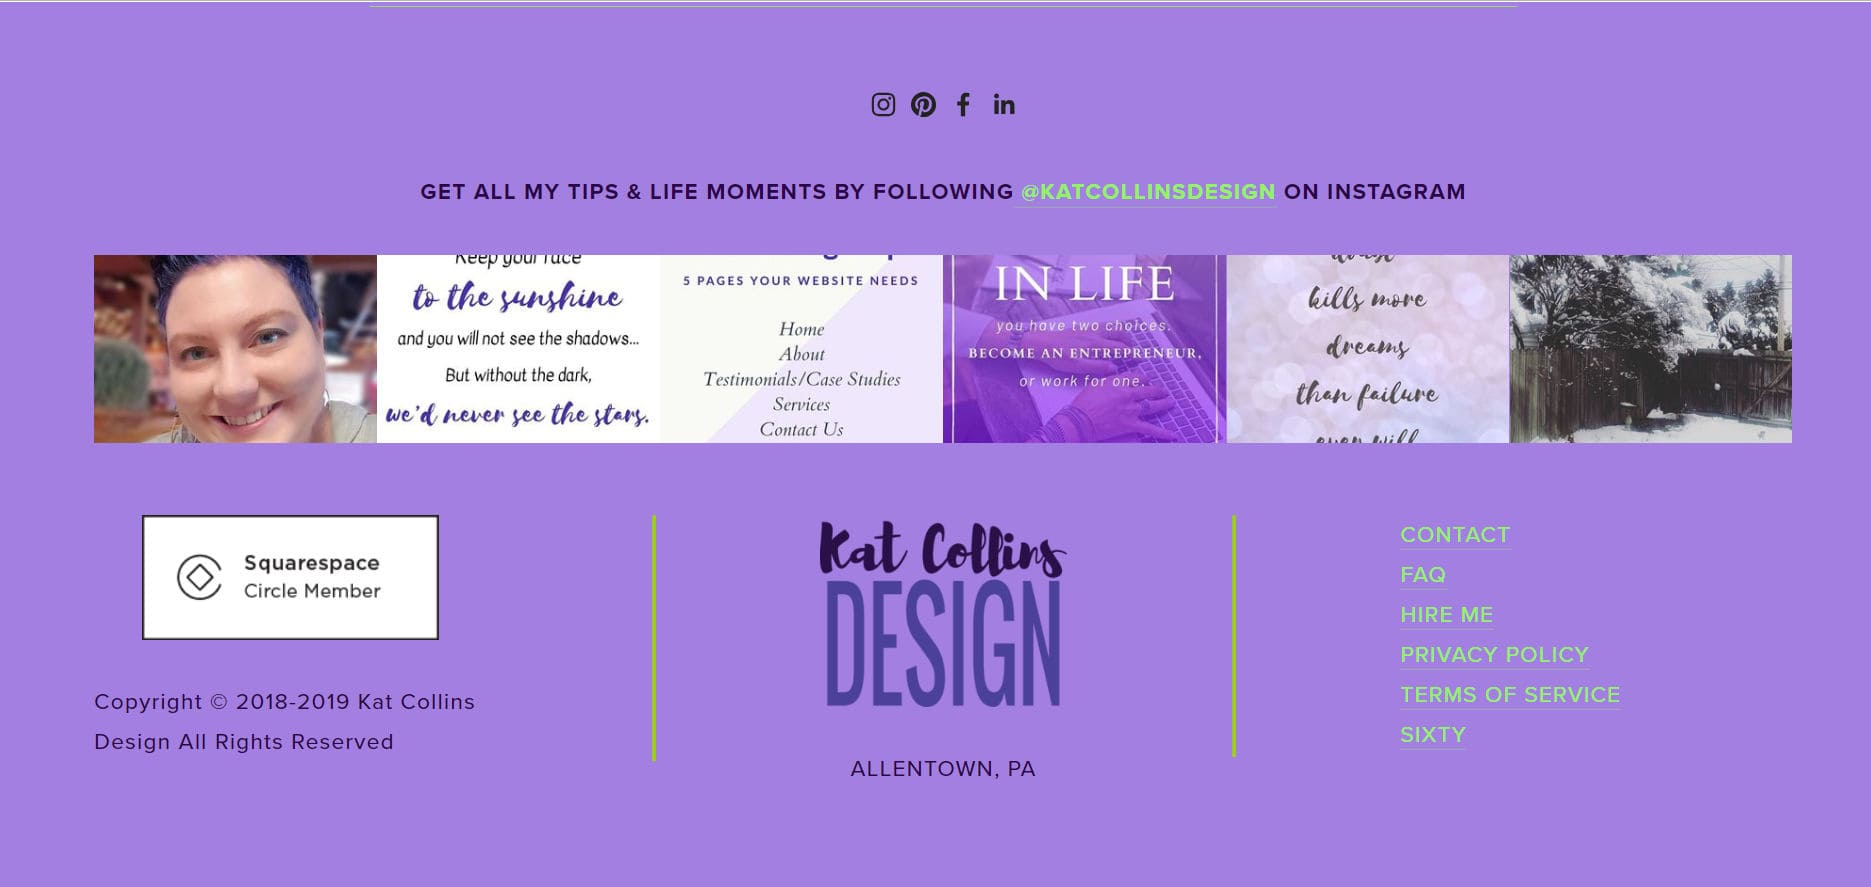 This is the website footer from my website, Kat Collins Design.